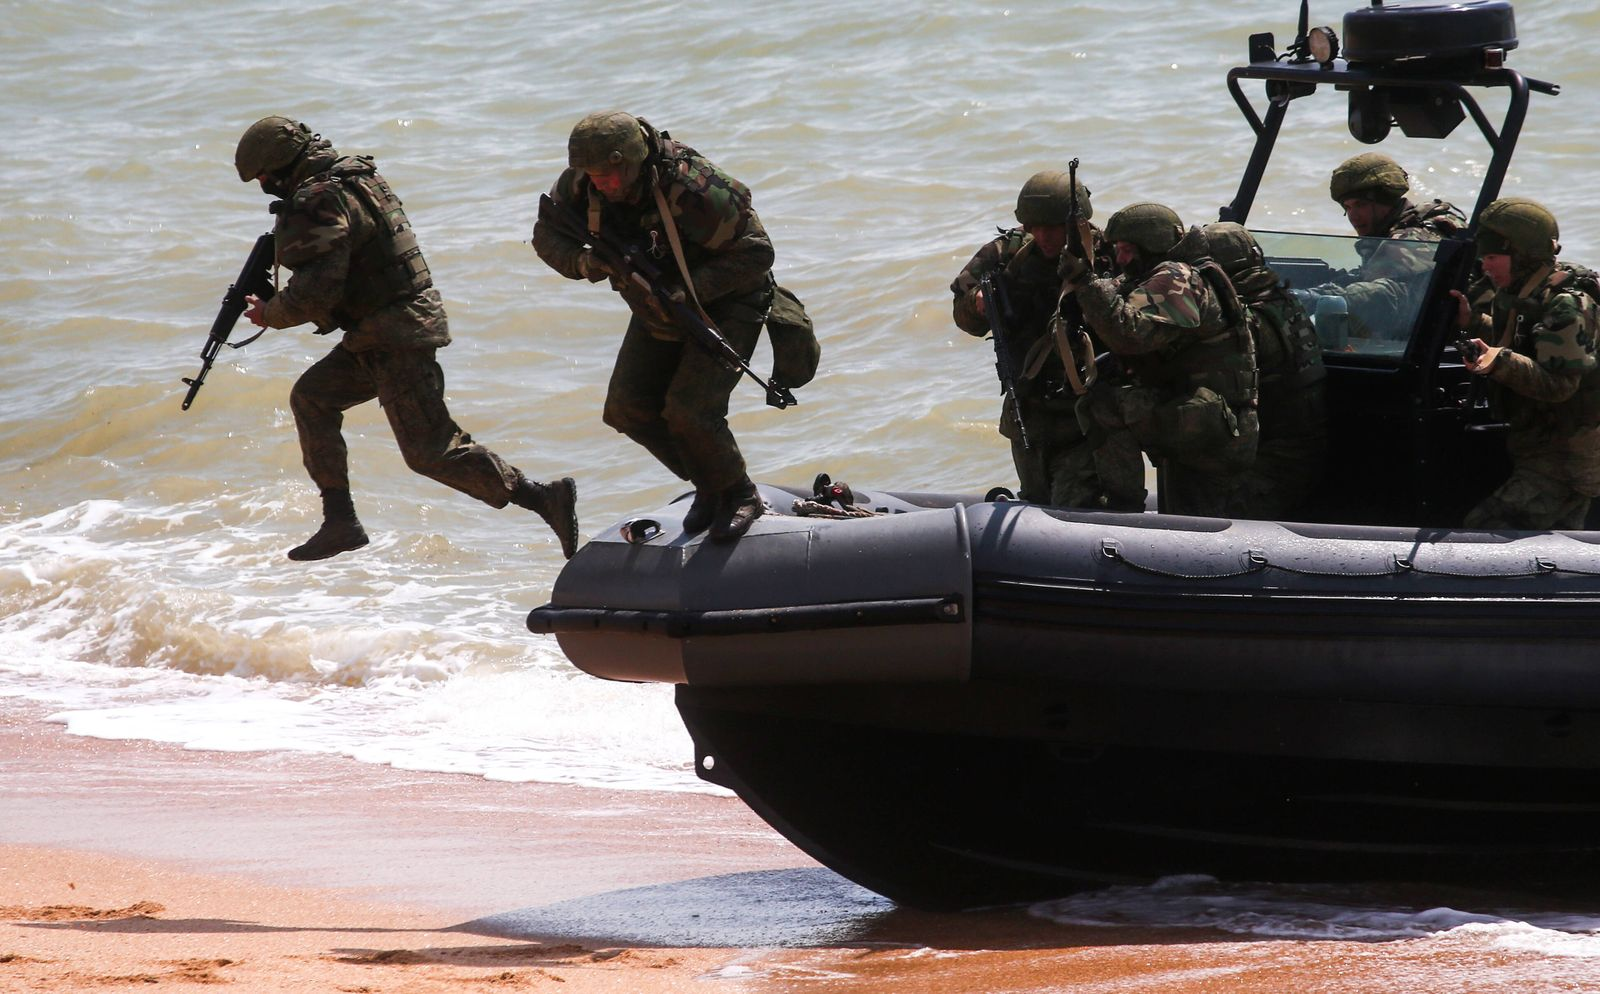 CRIMEA, RUSSIA APRIL 22, 2021: A Naval assault group disembark from a BK-10M fast assault boat during an exercise by